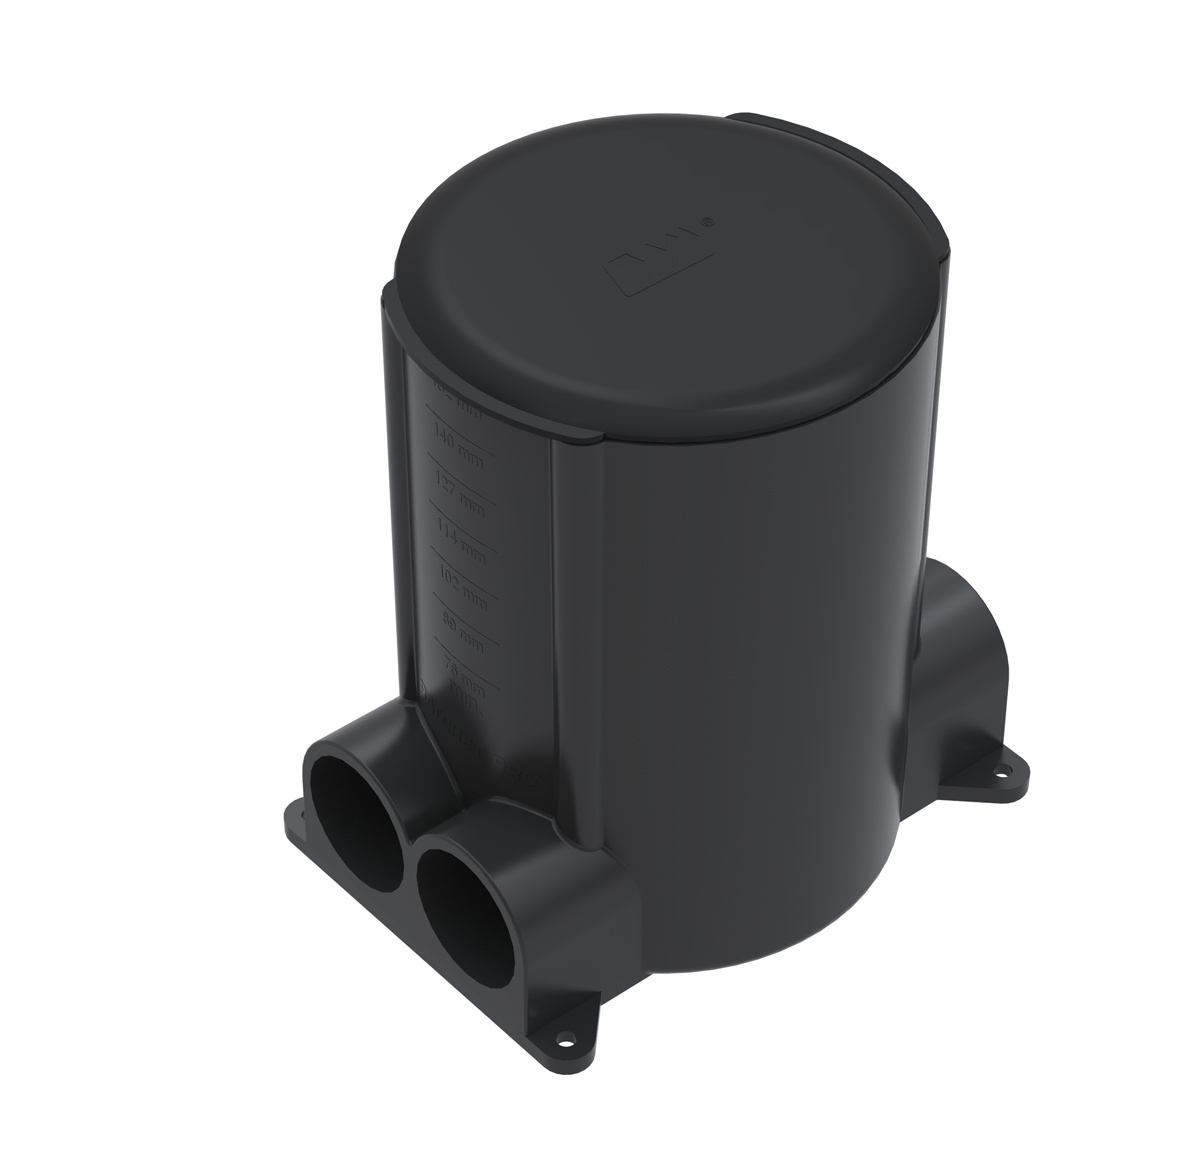 Ratchet Pro 881 Series Legrand Hic Multi Service Round Floor Boxaspx Mounted Electrical Outlets